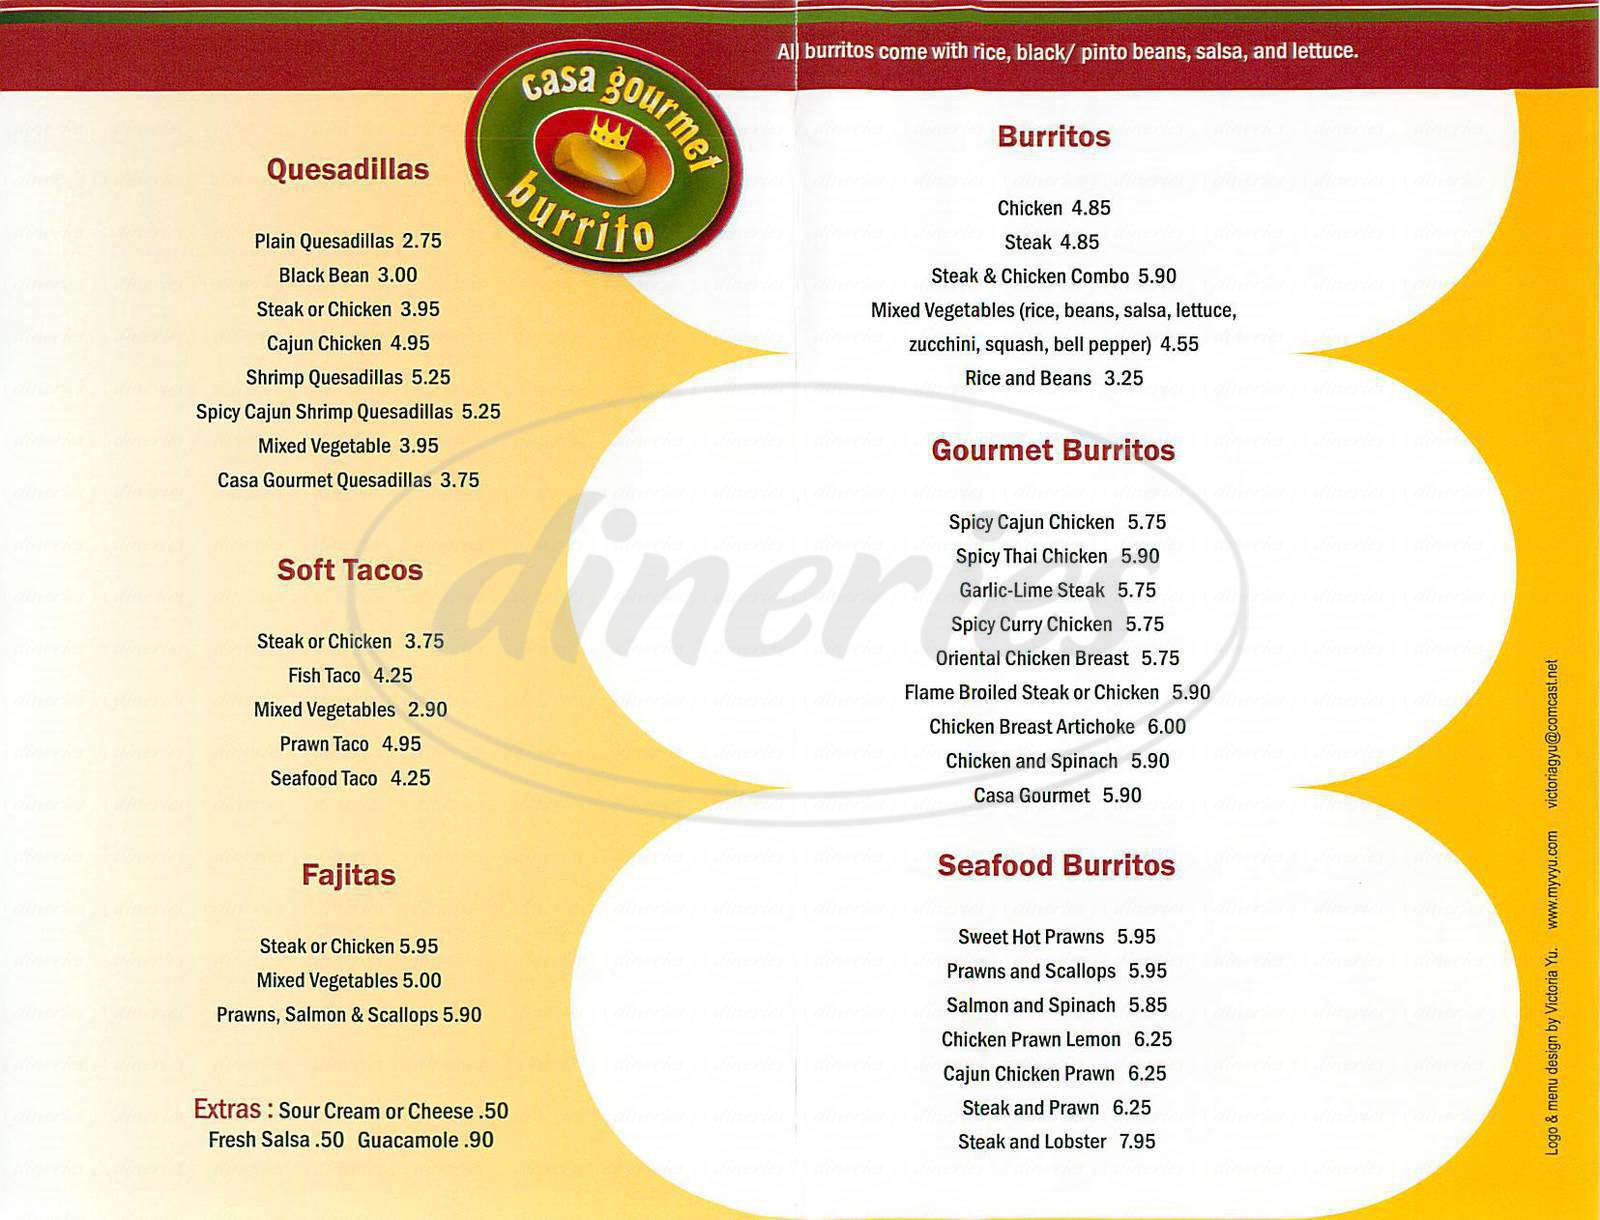 menu for Casa Gourmet Burrito